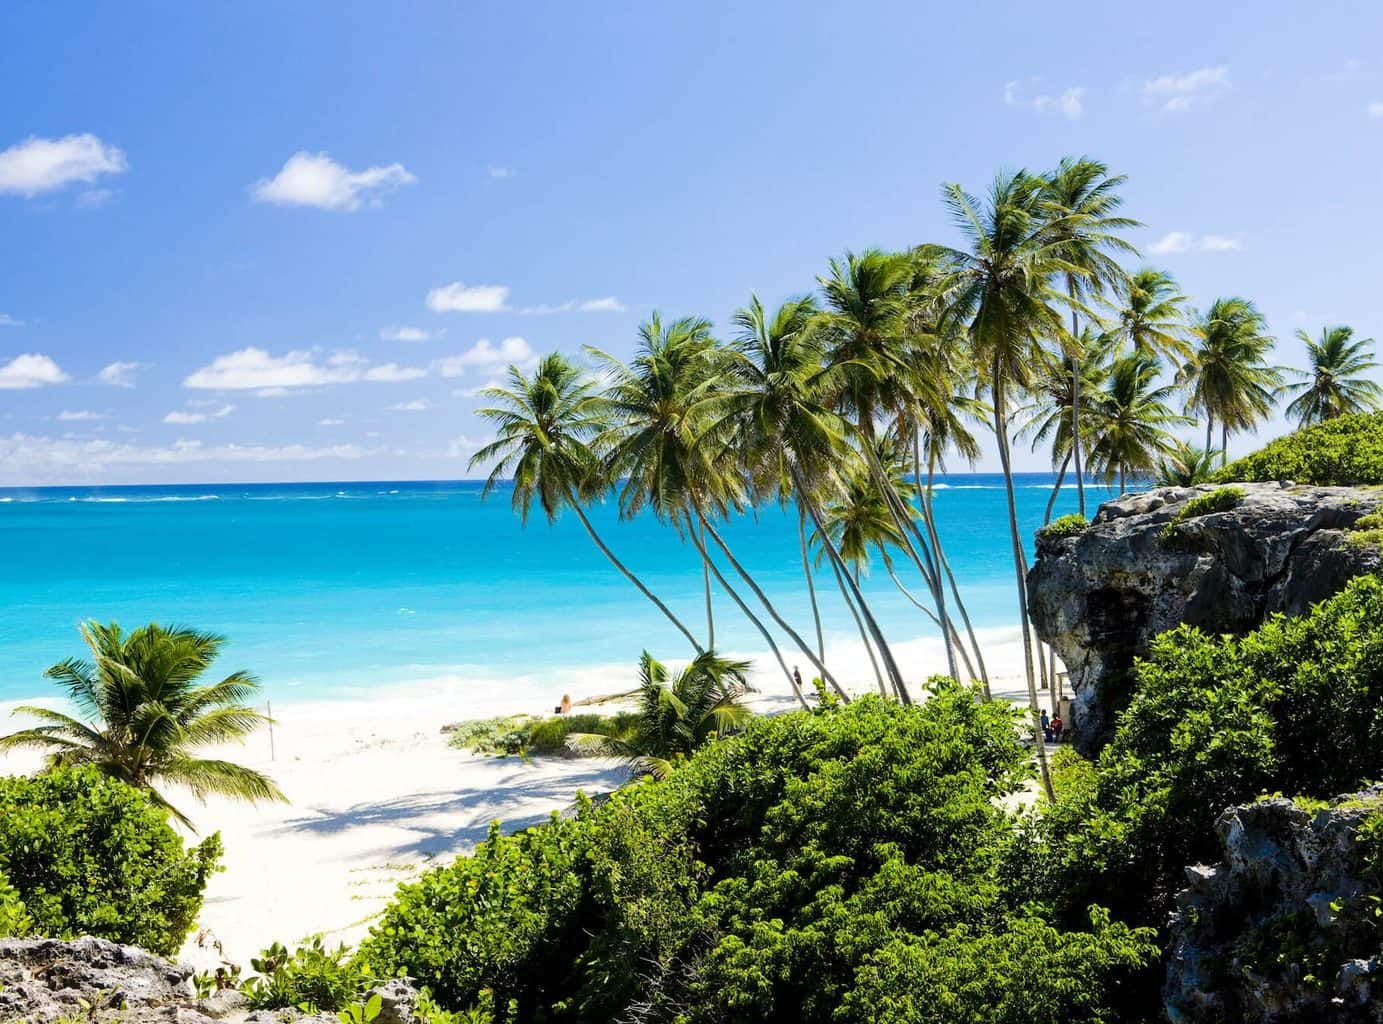 Luxury Barbados Holiday - View of the beach at Fairmont Royal Pavilion Barbados